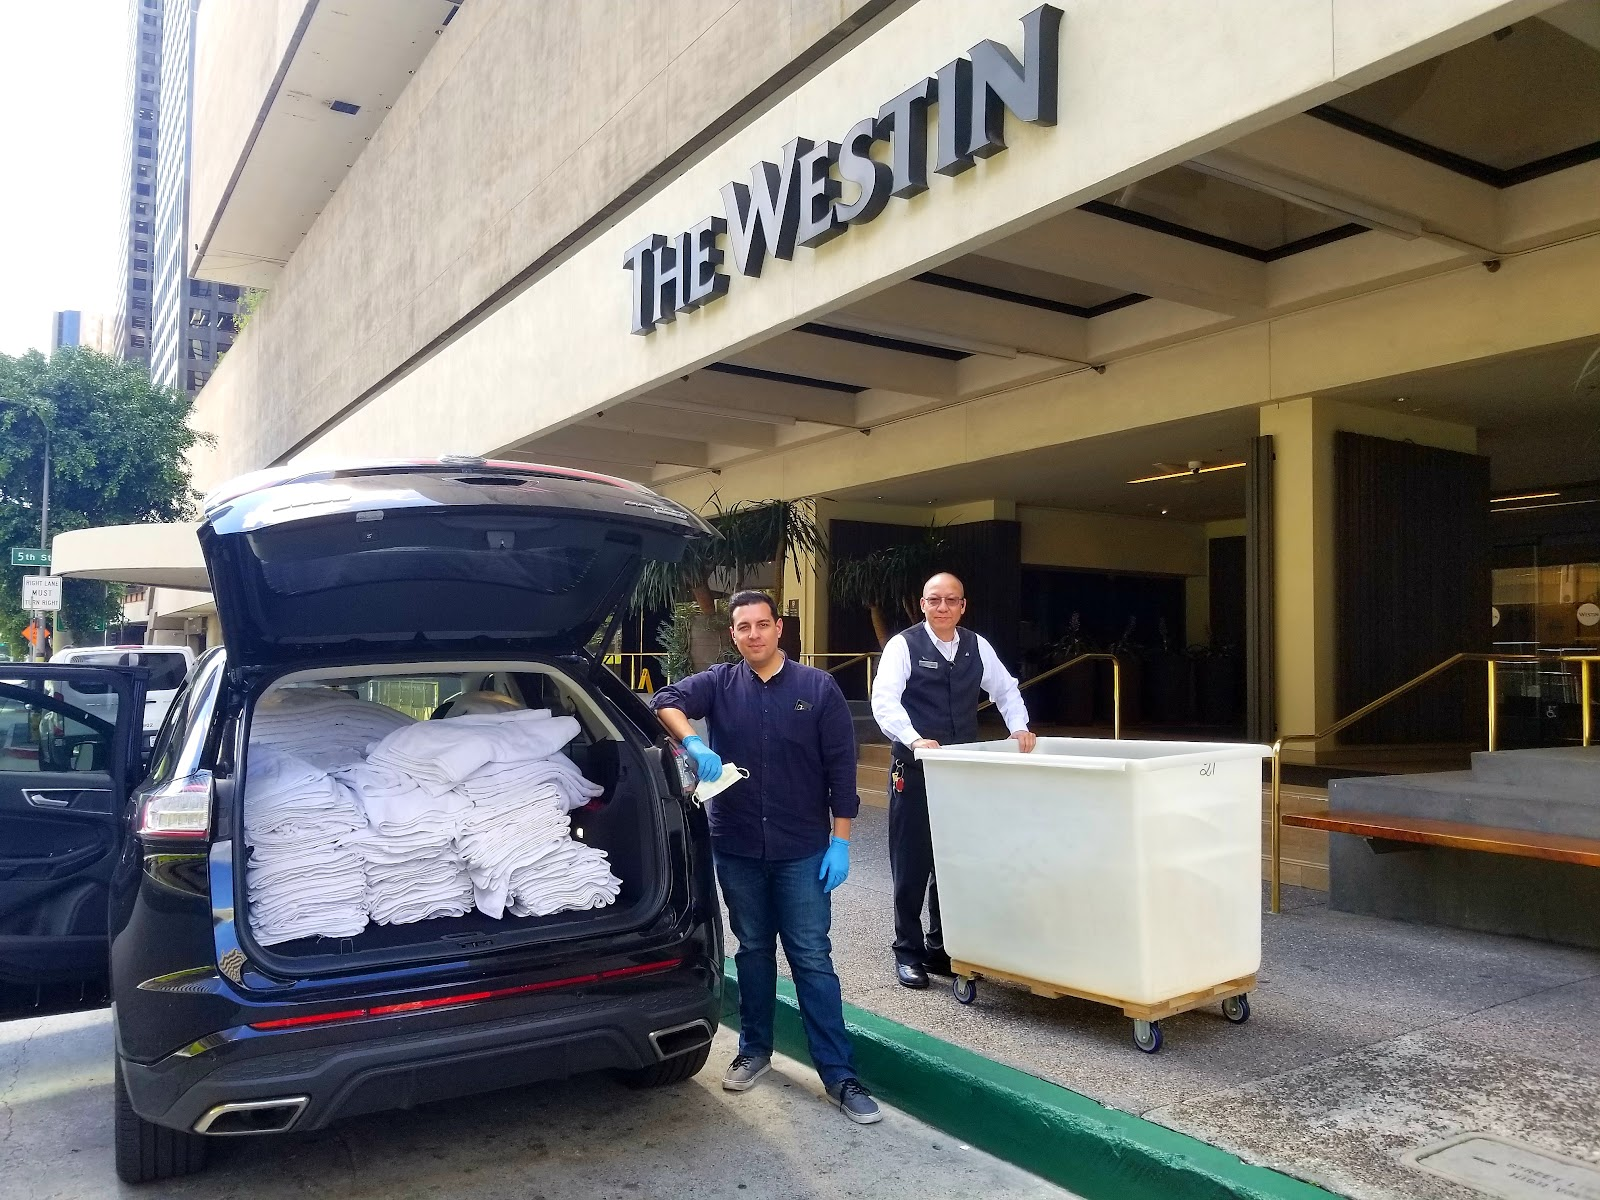 Man with car full of towels